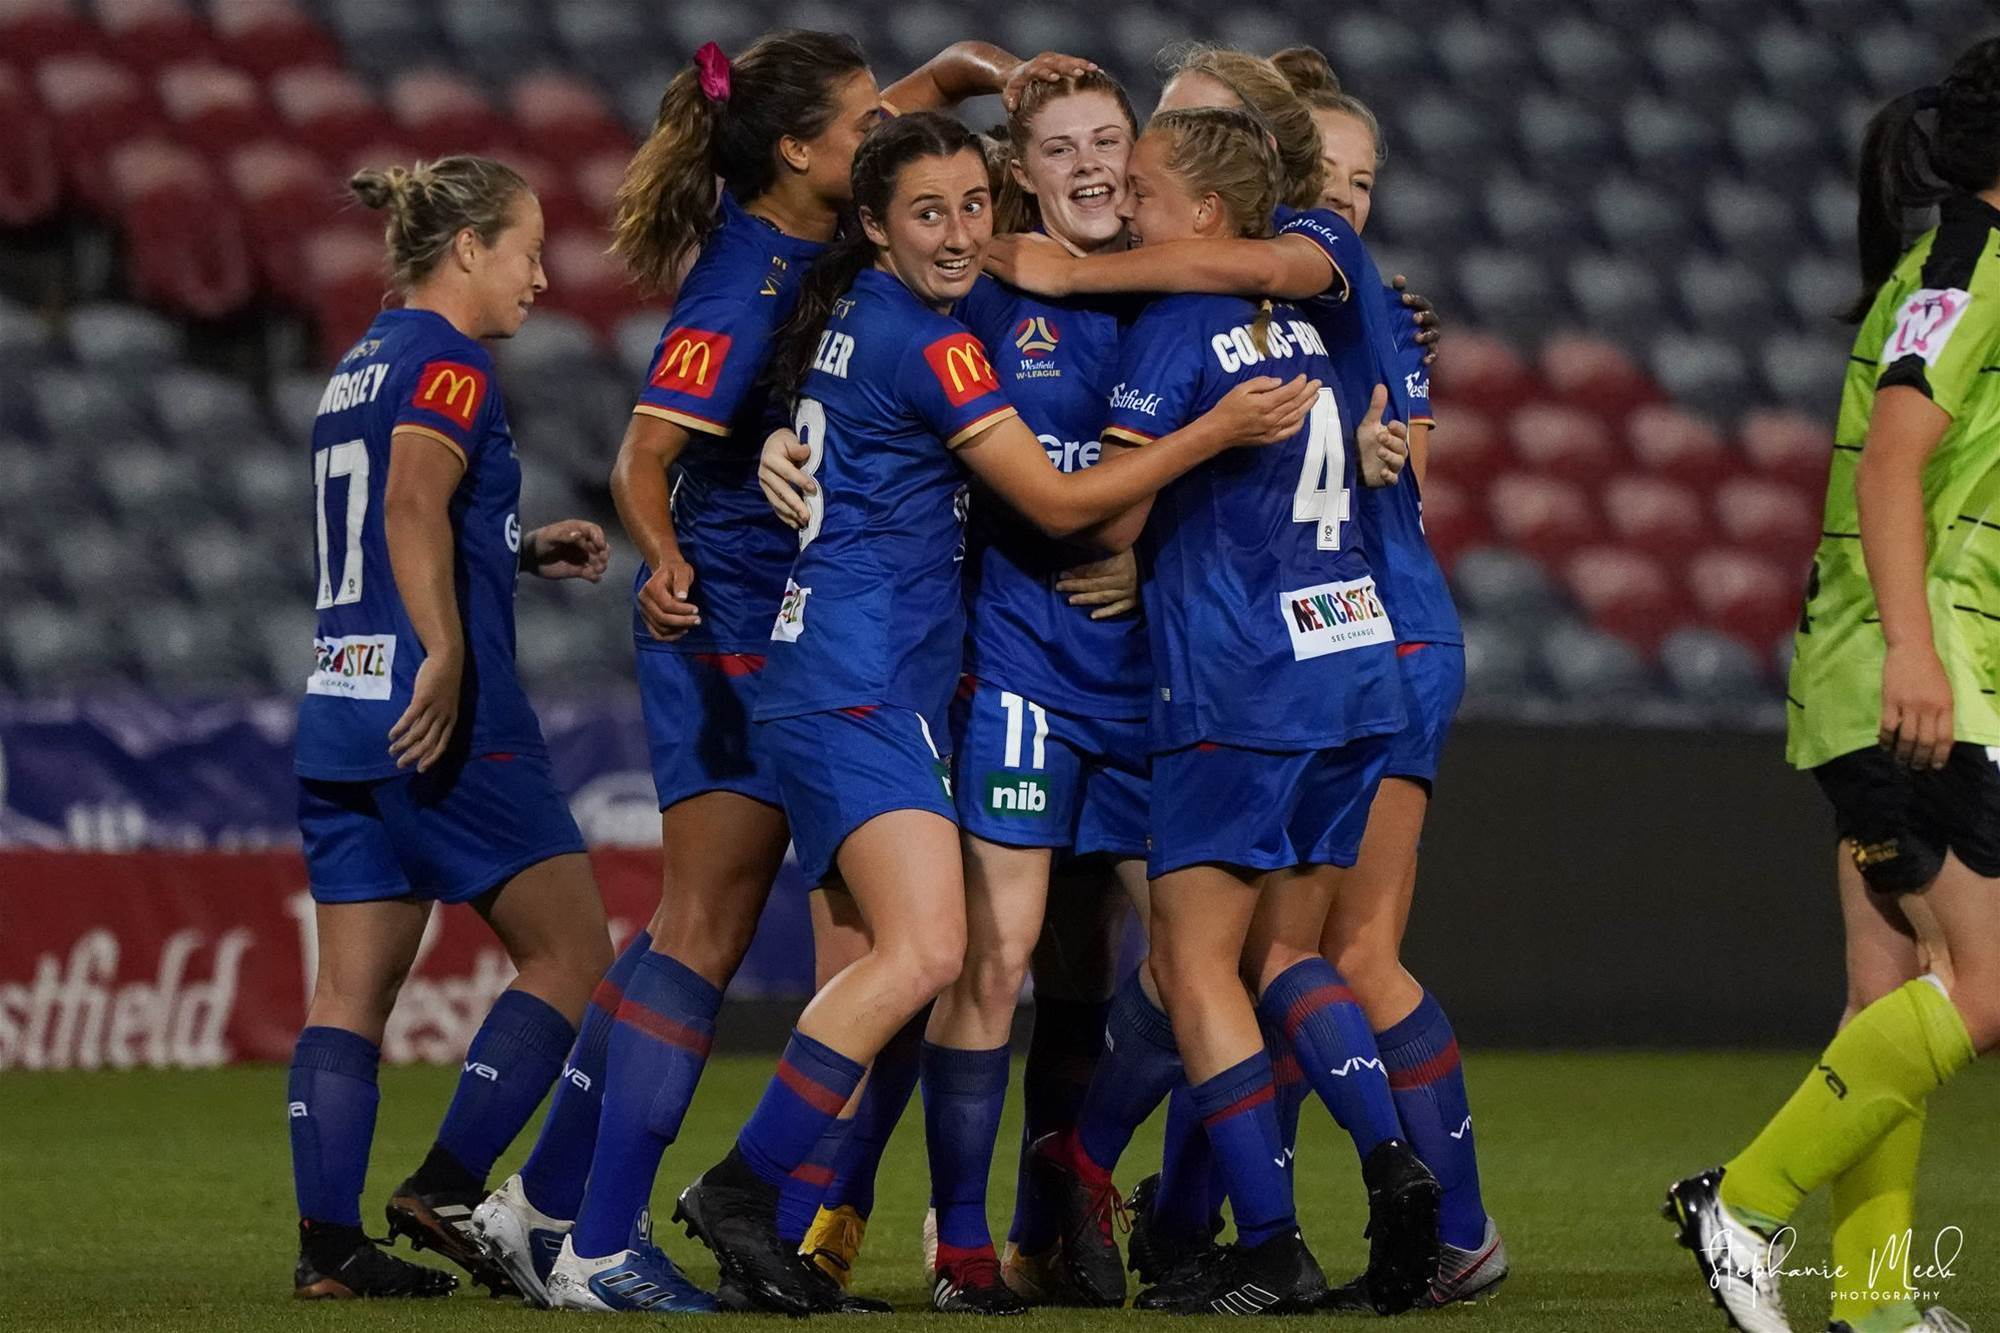 Pic special: Newcastle Jets v Canberra United